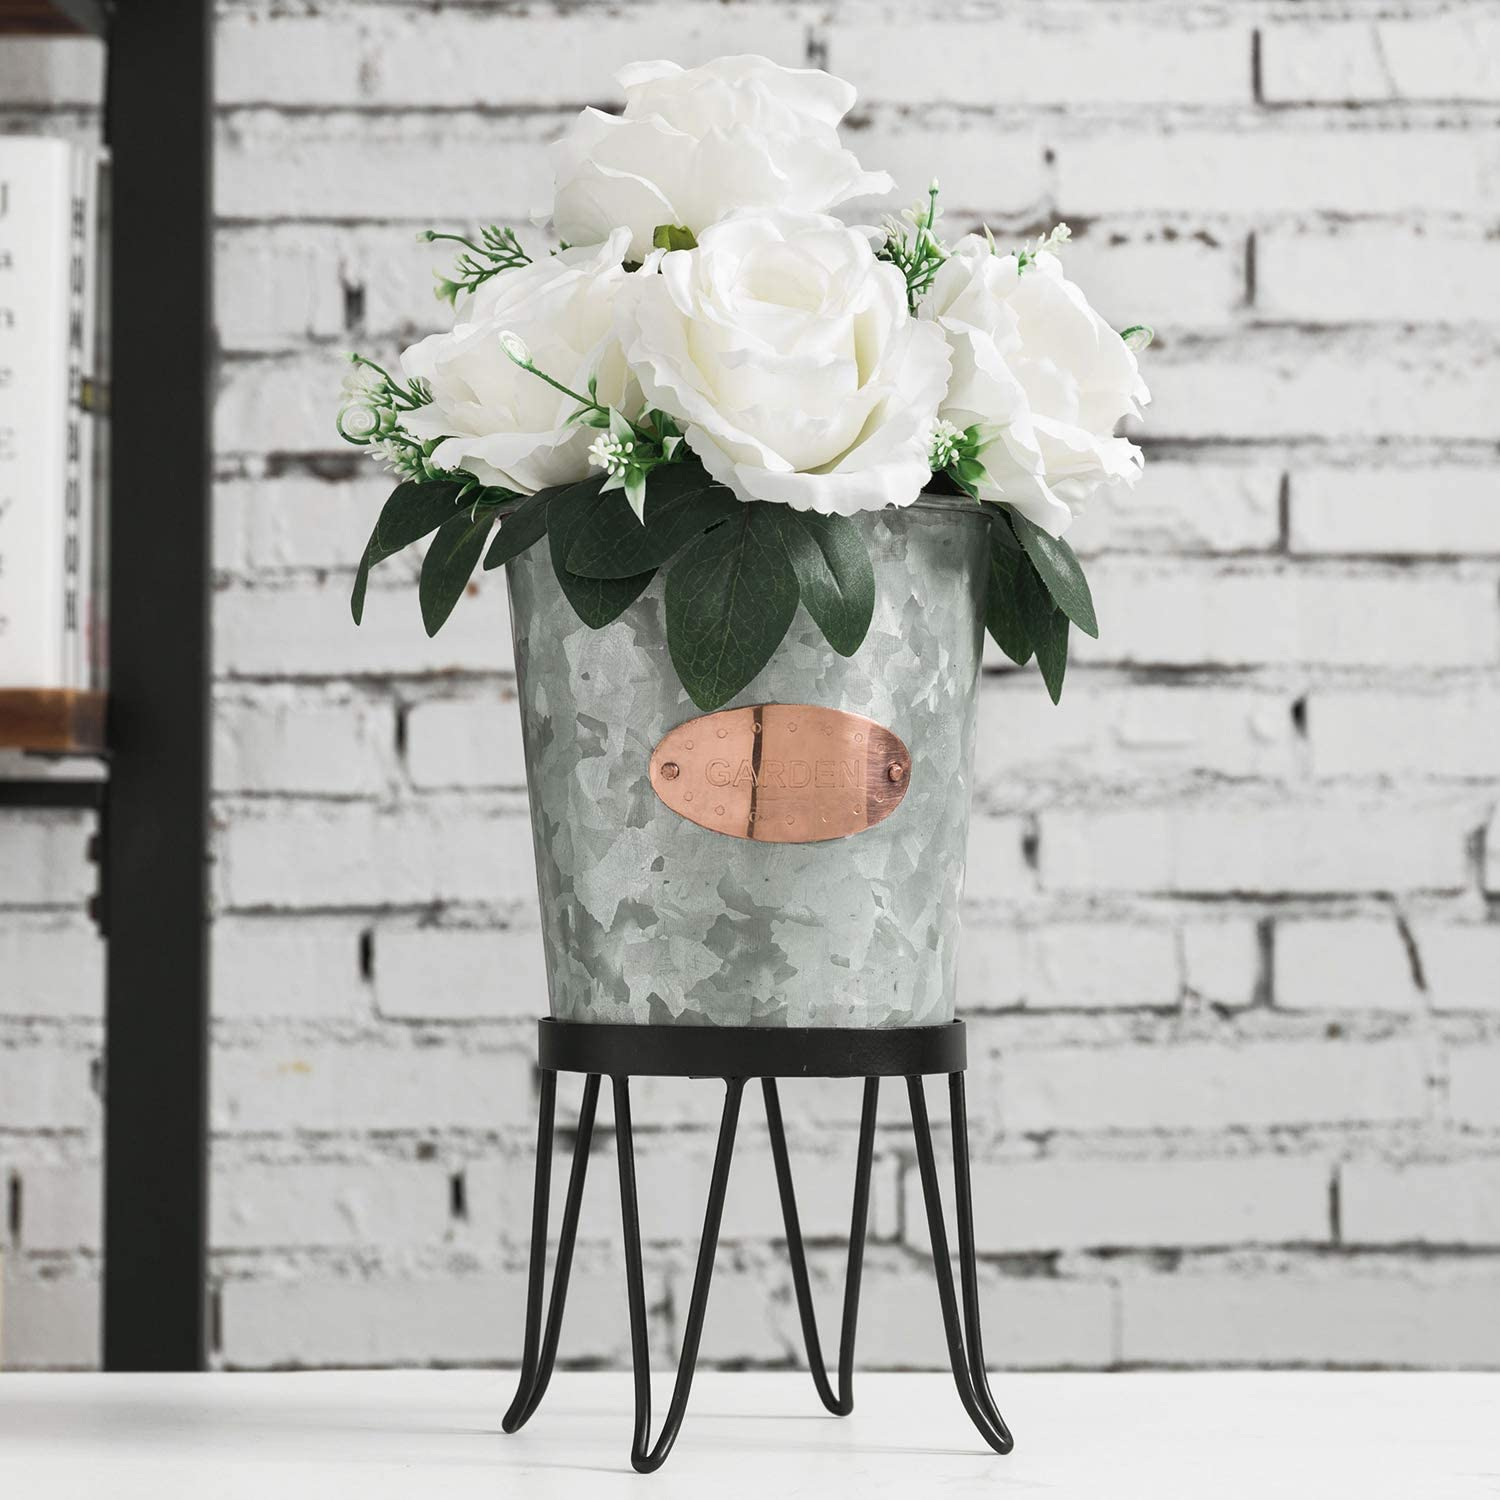 MyGift Galvanized Silver Metal Pail Style Plant Bucket, Planter Pot with Copper Garden Label & Black Metal Stand